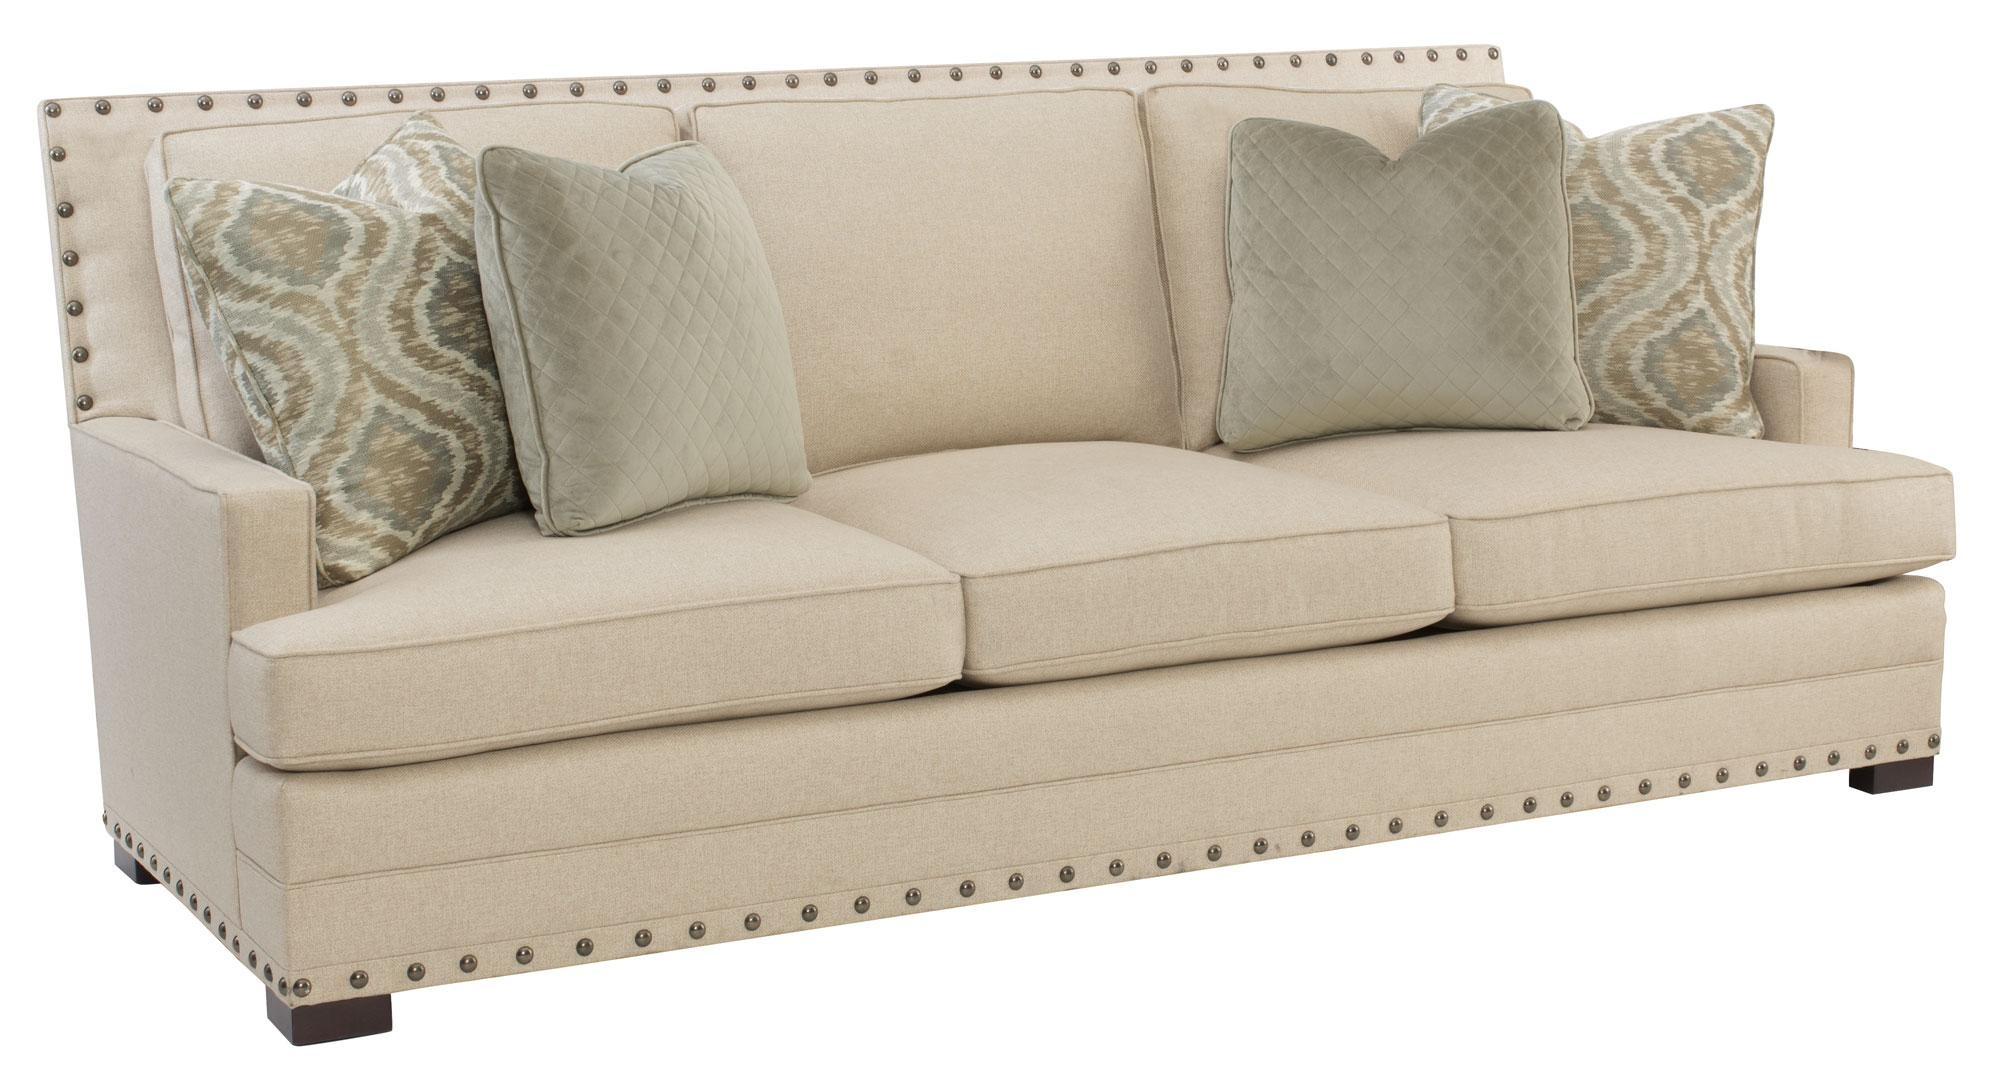 Sofa | Bernhardt With Bernhardt Sofas (View 15 of 20)